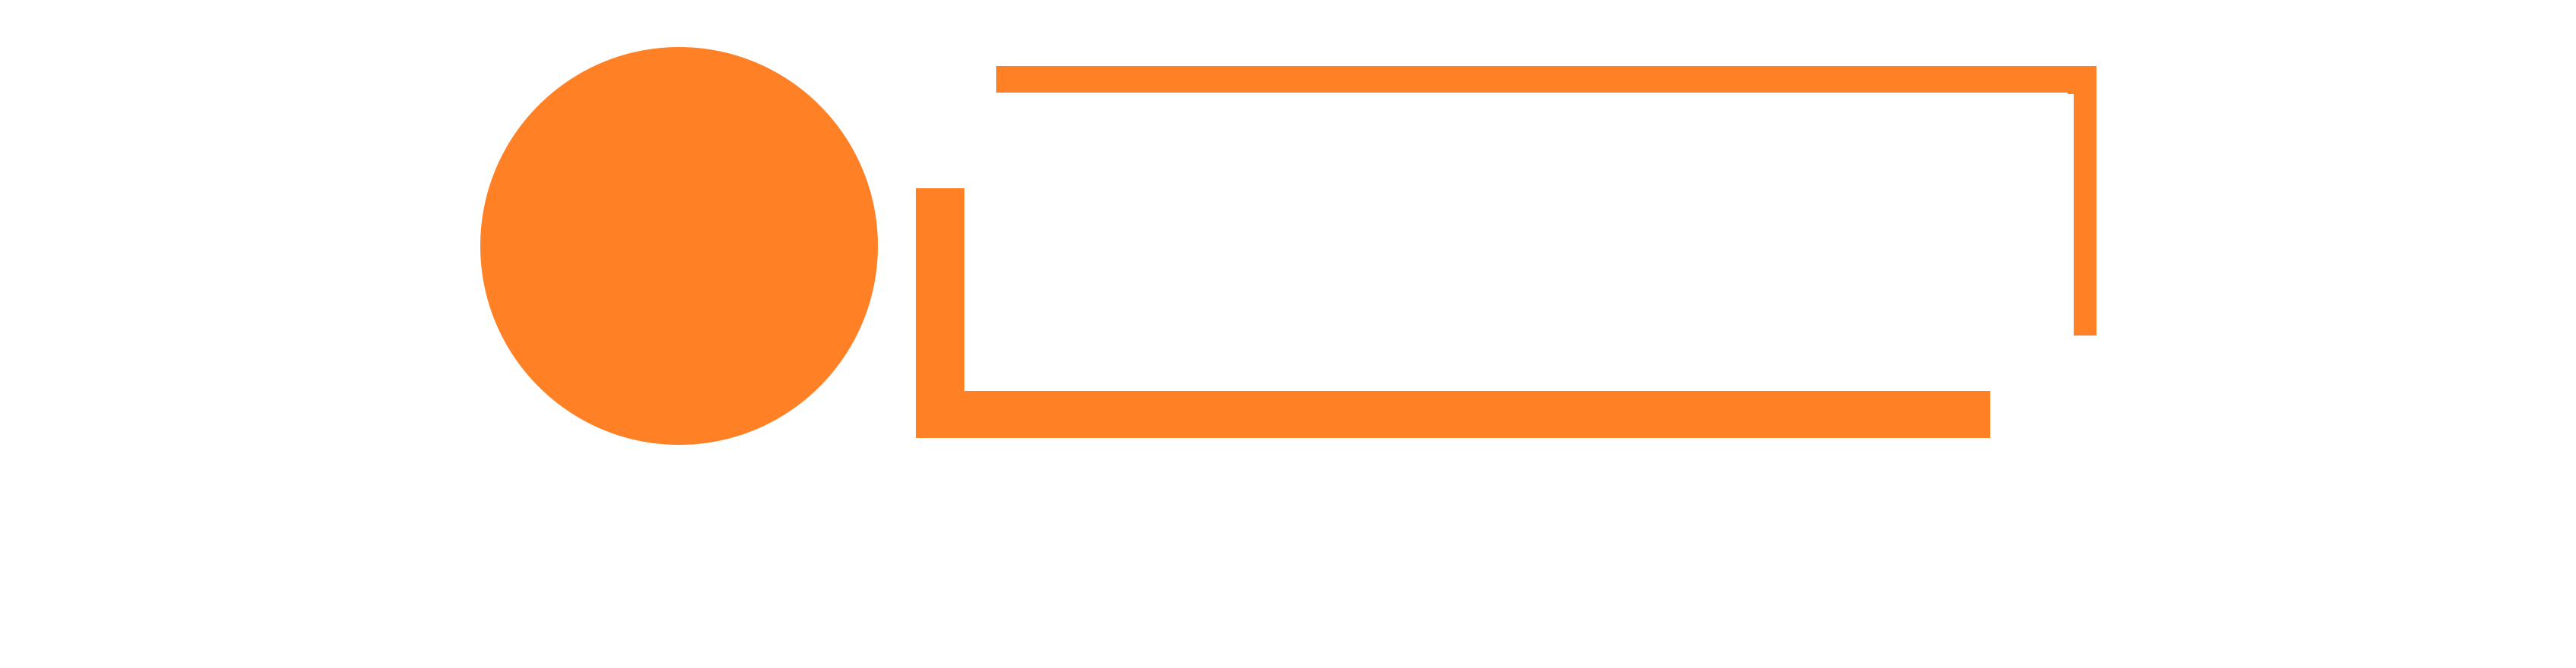 Temsol Innovation